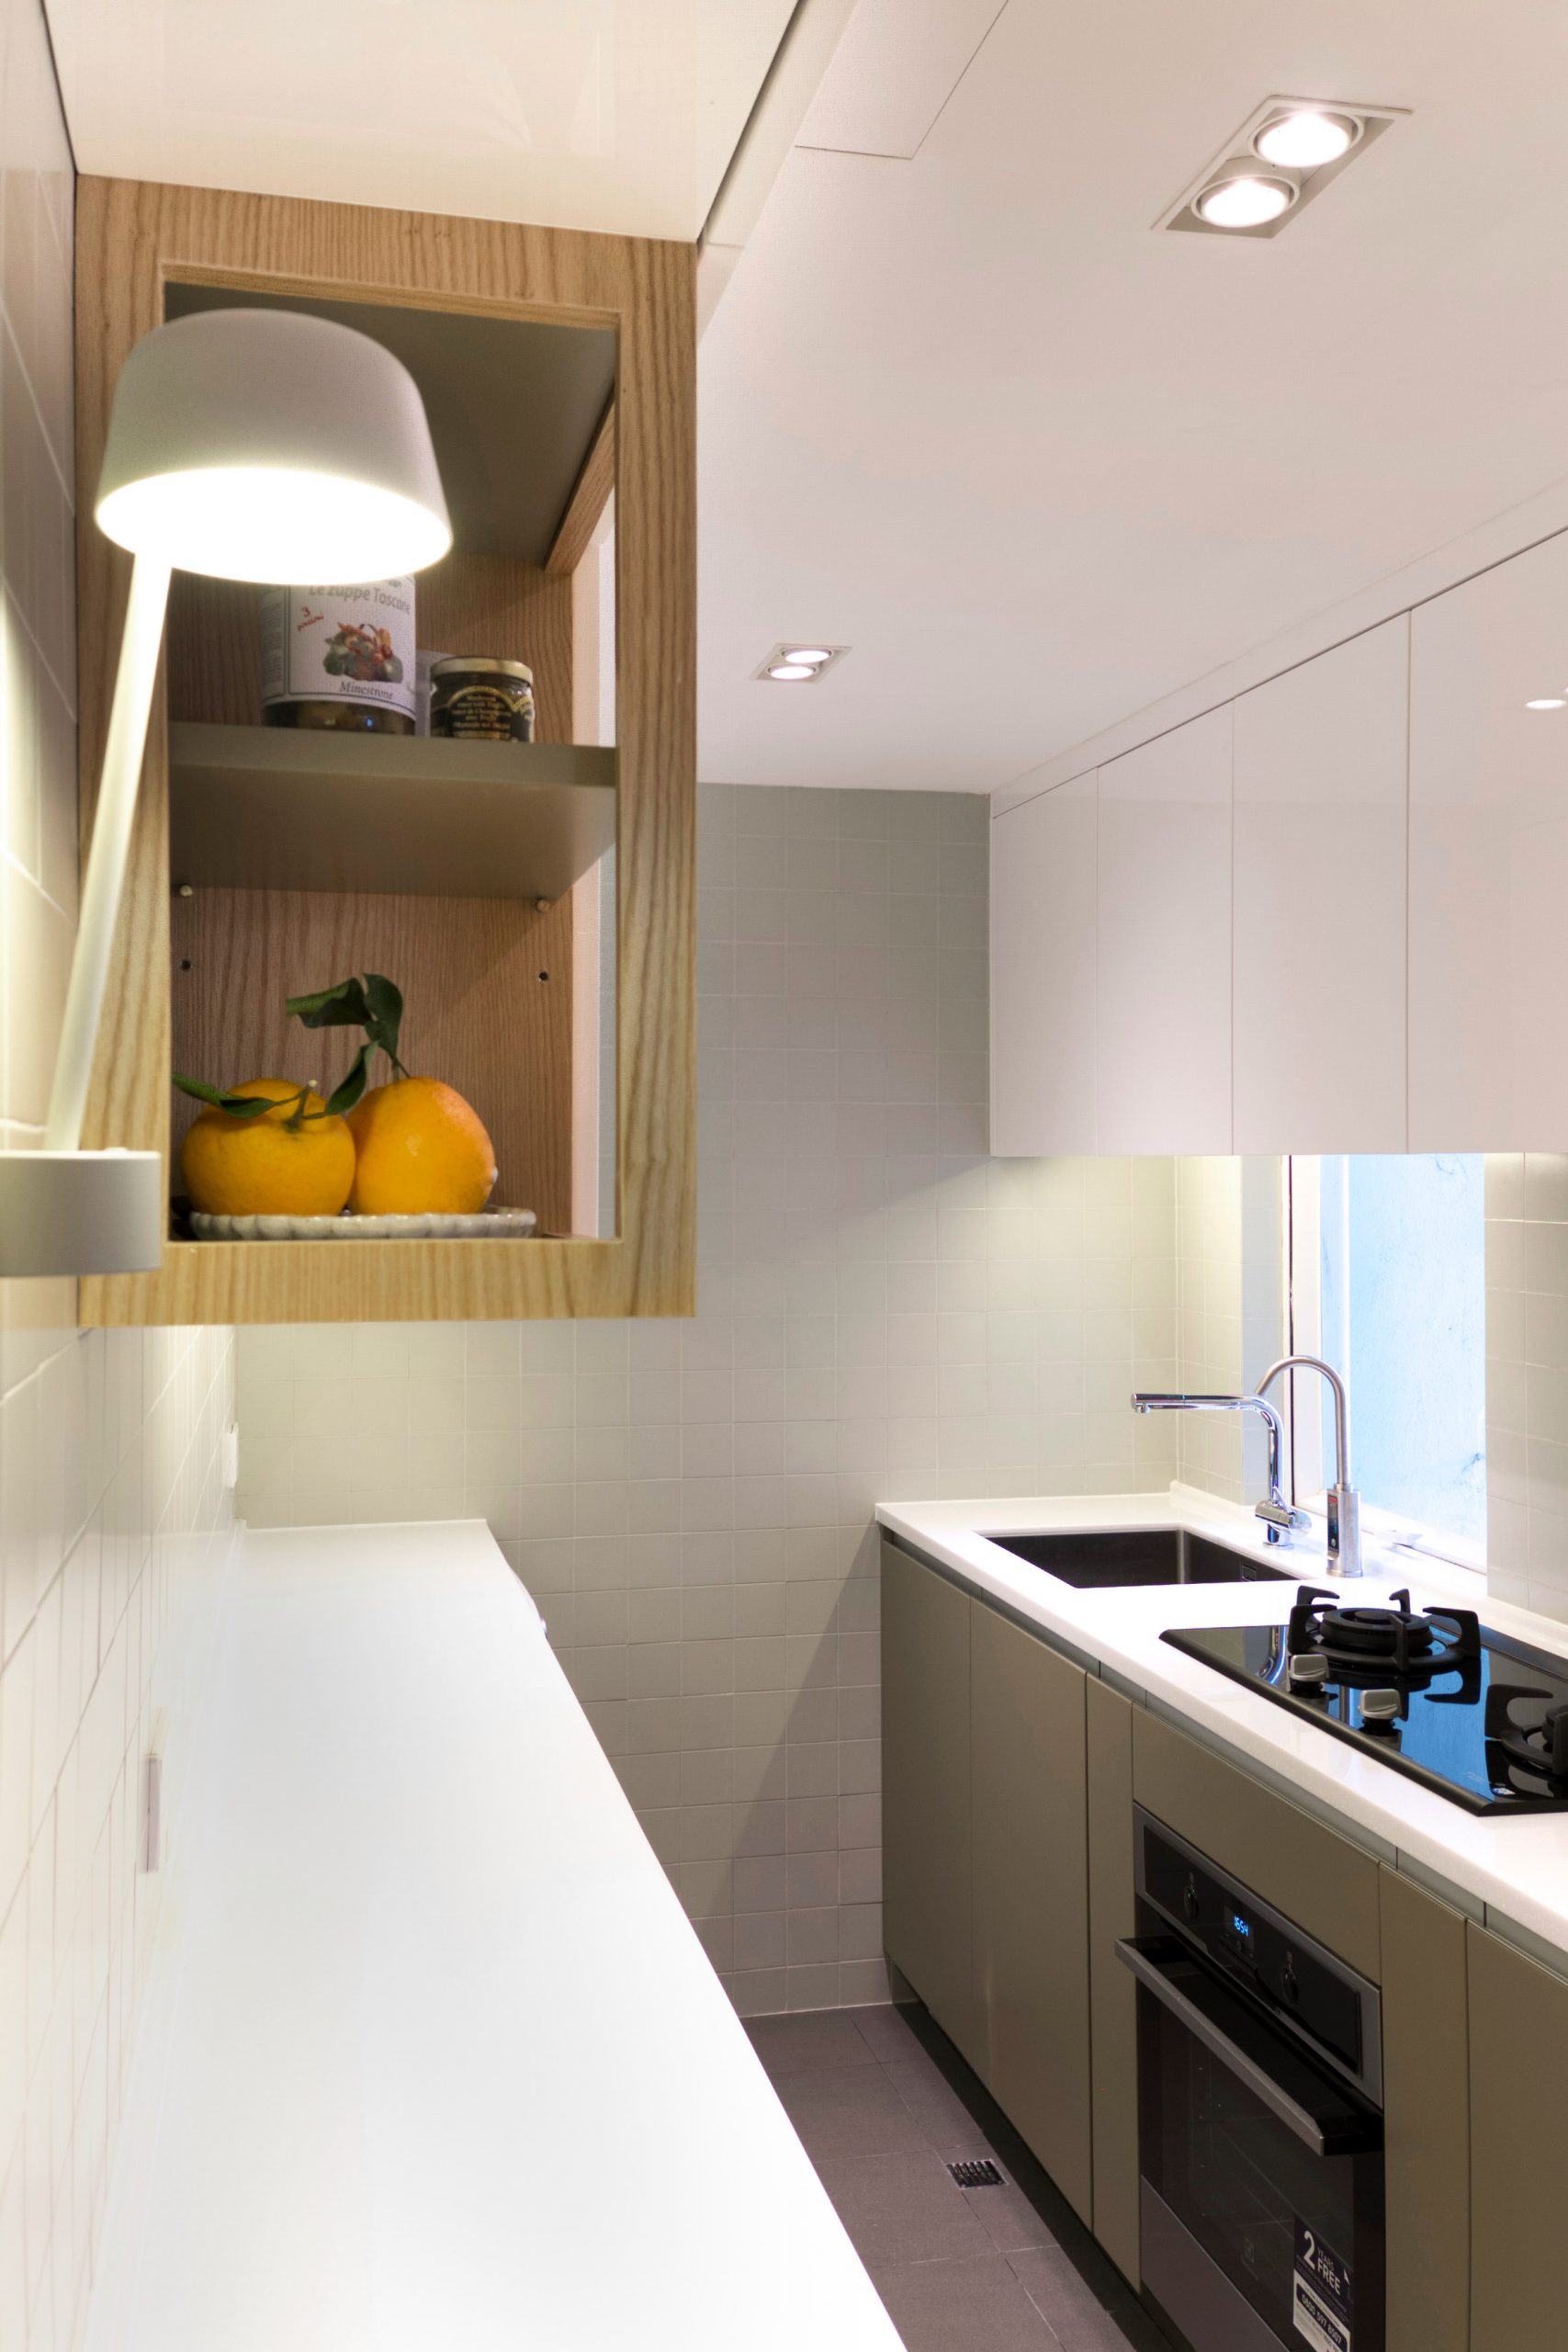 Pale green galley kitchen by Design Eight Five Two